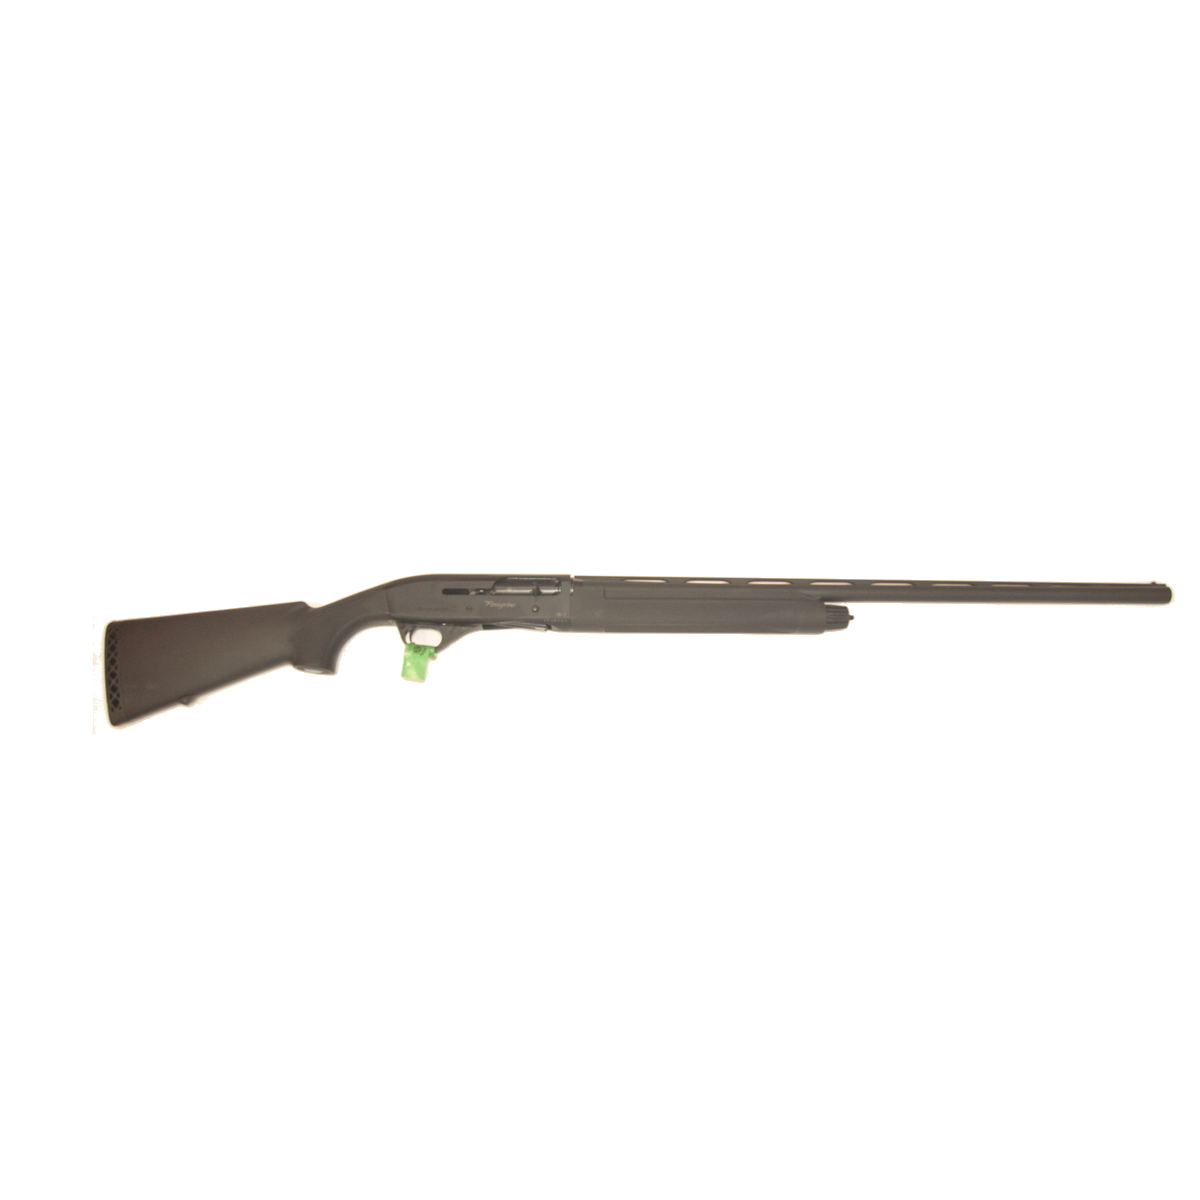 Stoeger M3000 PEREGRINE Synthetic 12/76/760